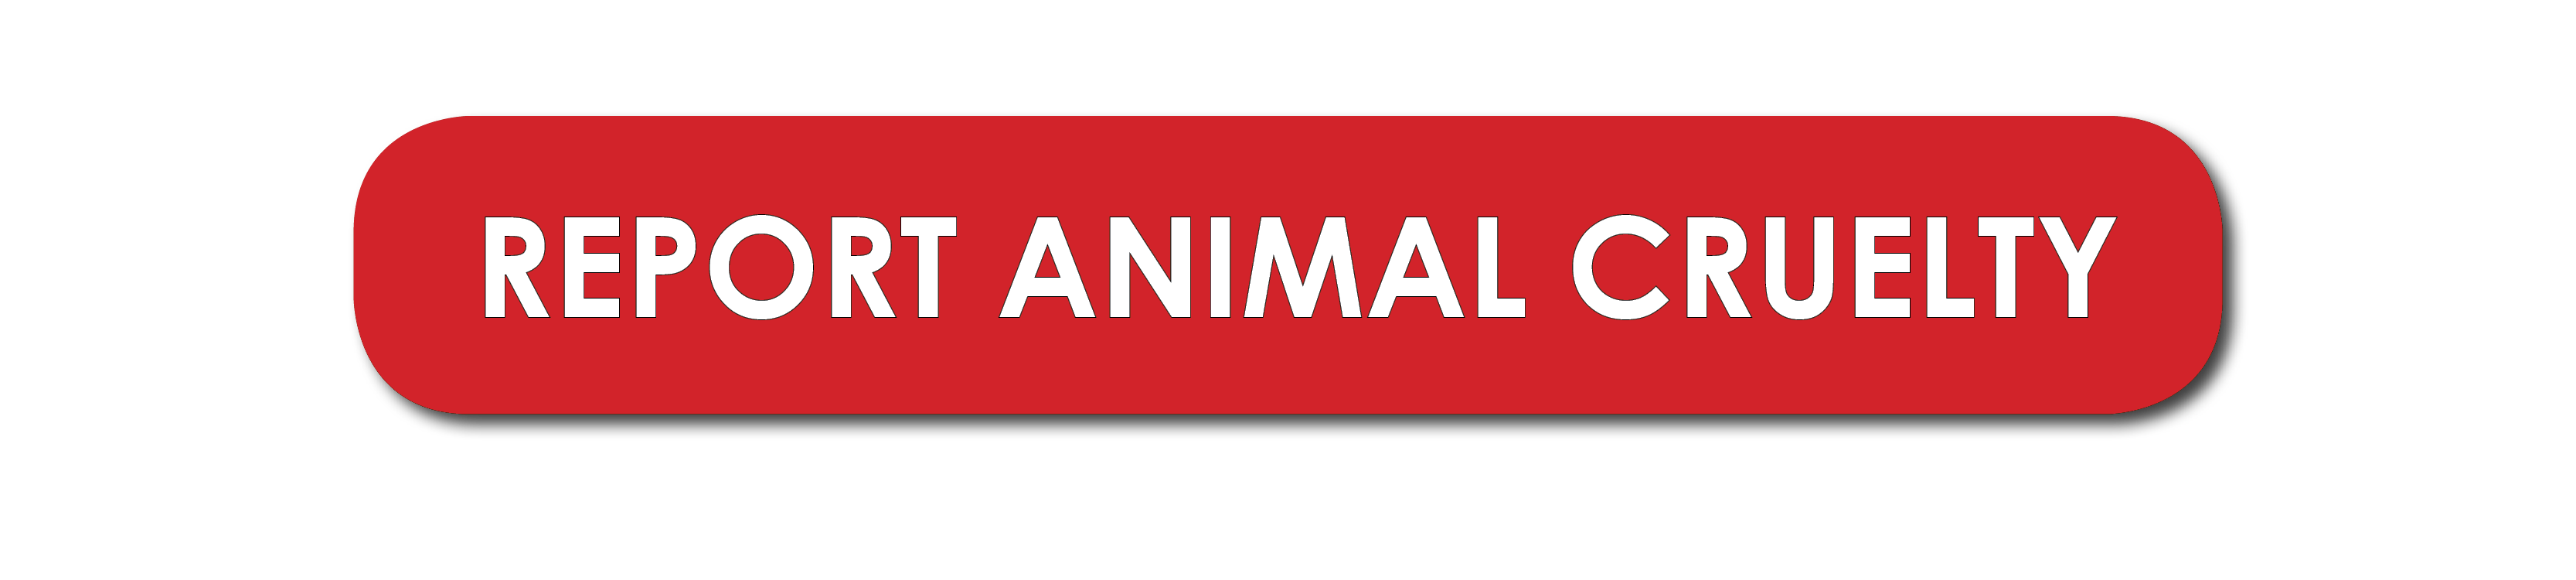 Click here to report animal cruelty